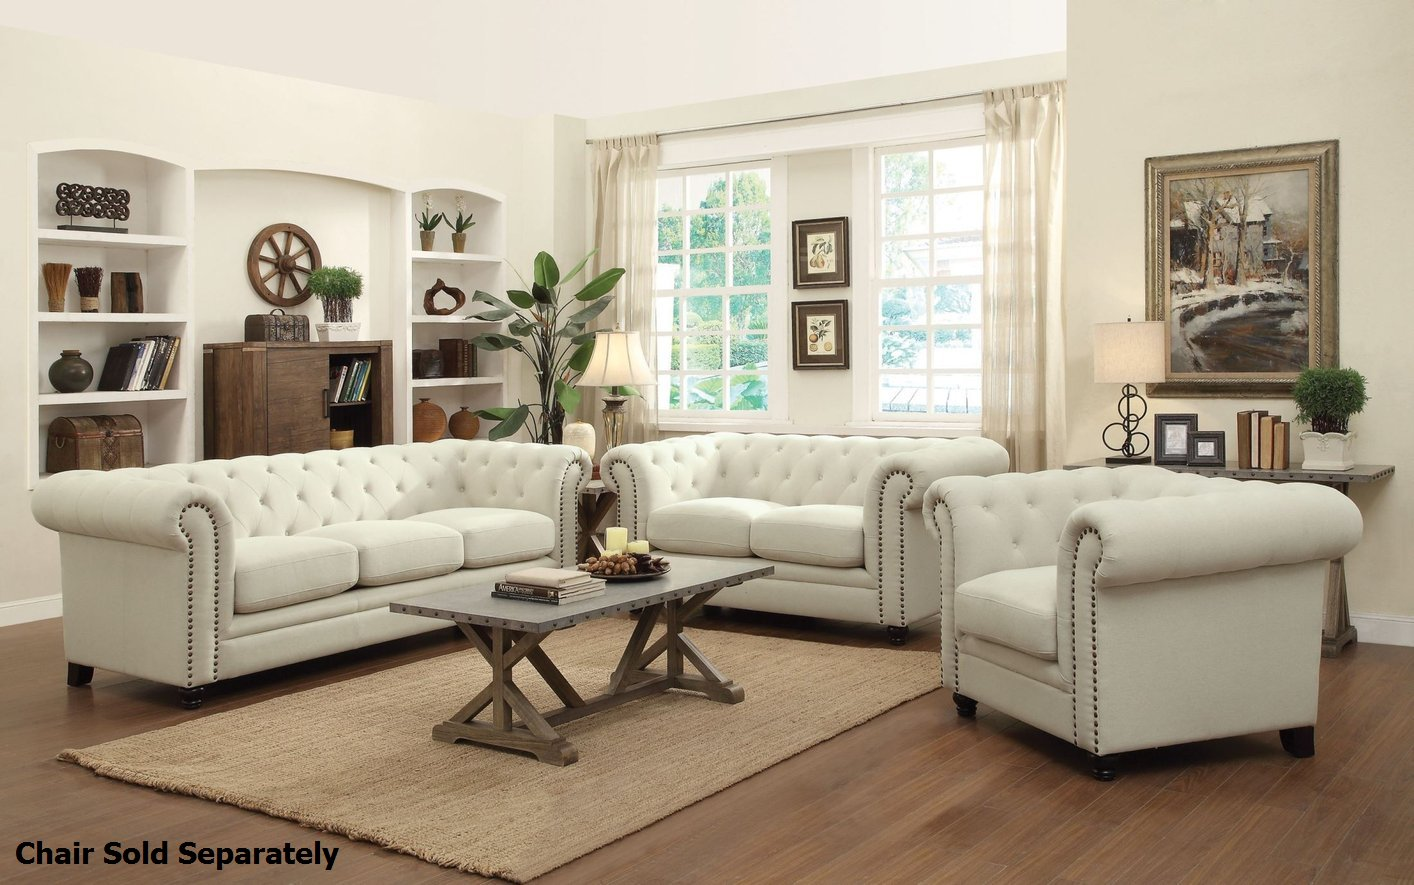 sofa and loveseat set Roy Beige Fabric Sofa and Loveseat Set   Steal A Sofa Furniture  sofa and loveseat set